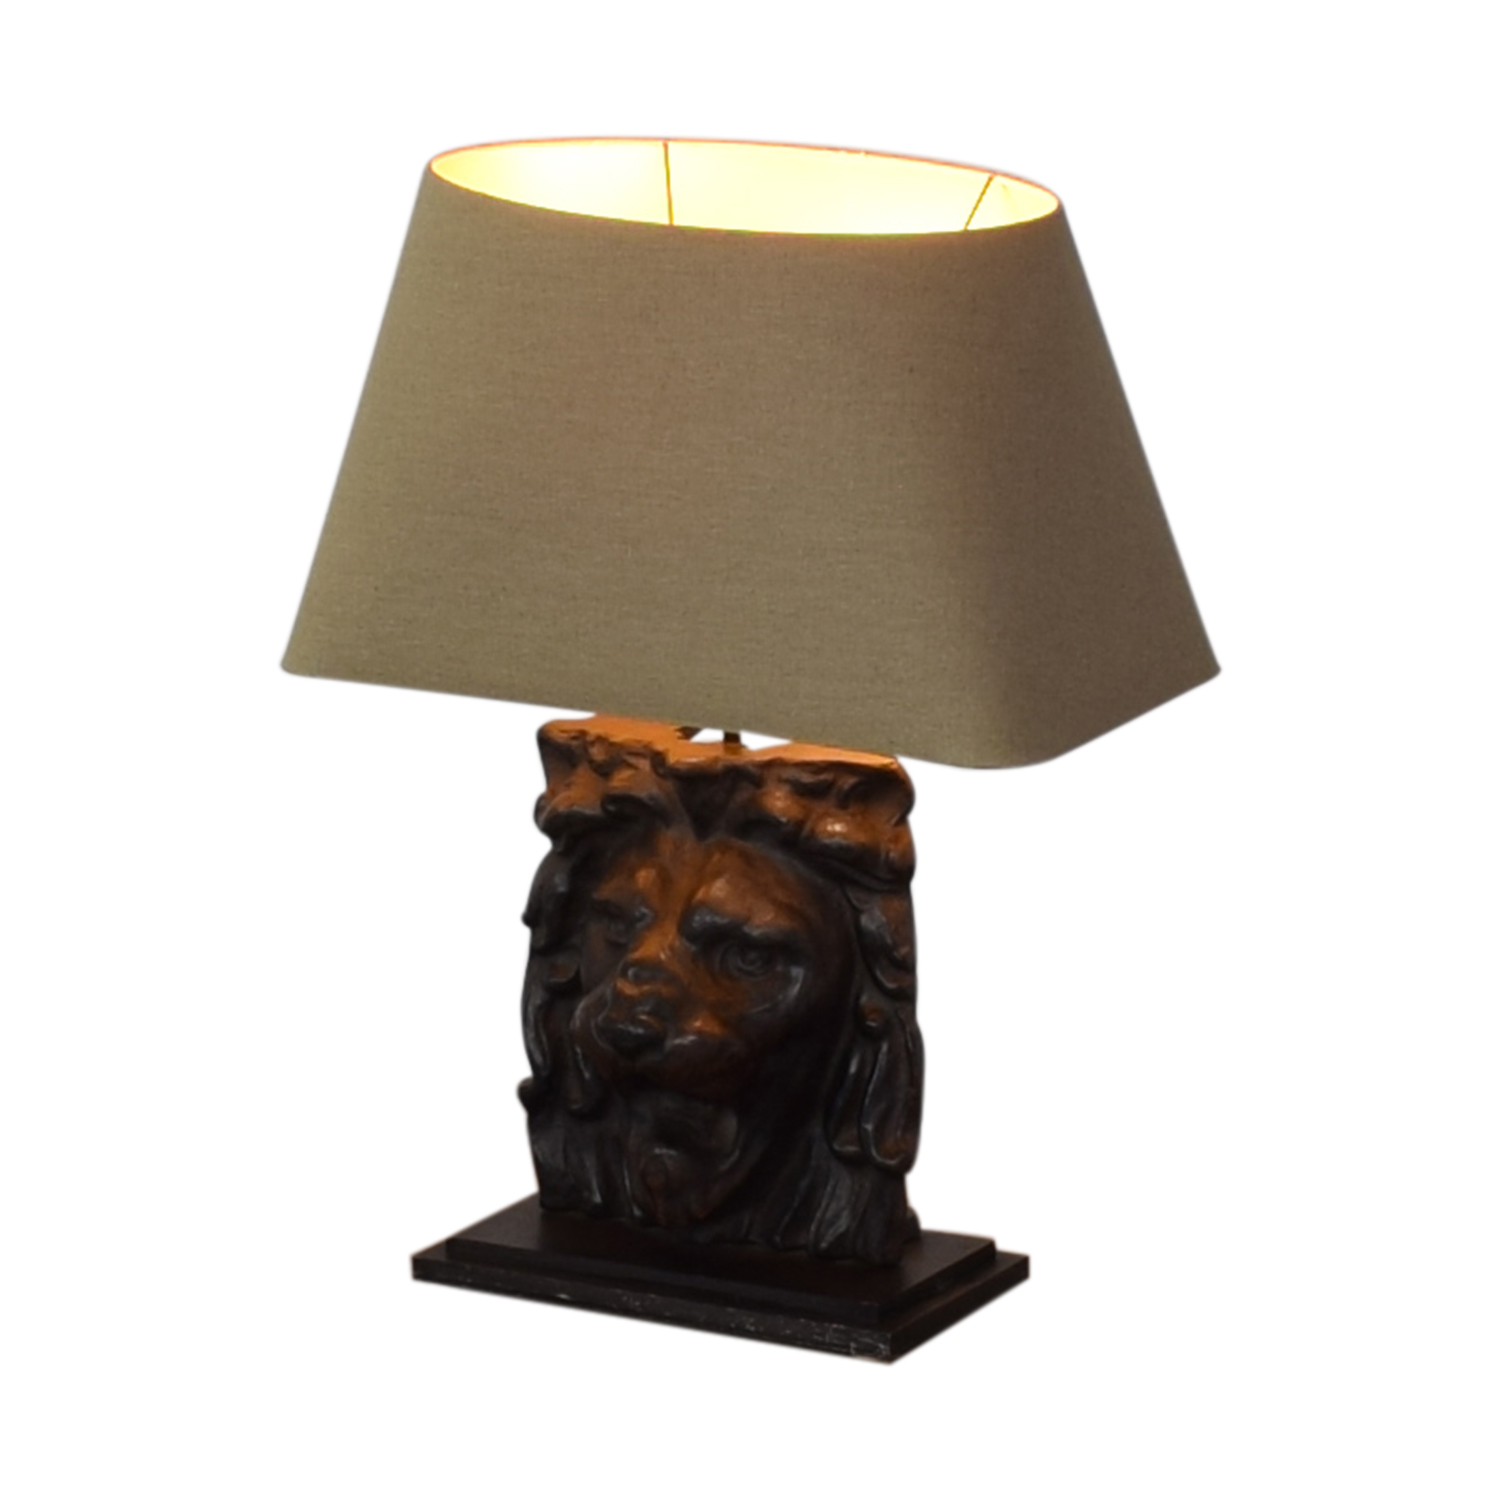 Restoration Hardware Restoration Hardware Lion's Head Table Lamp Lamps